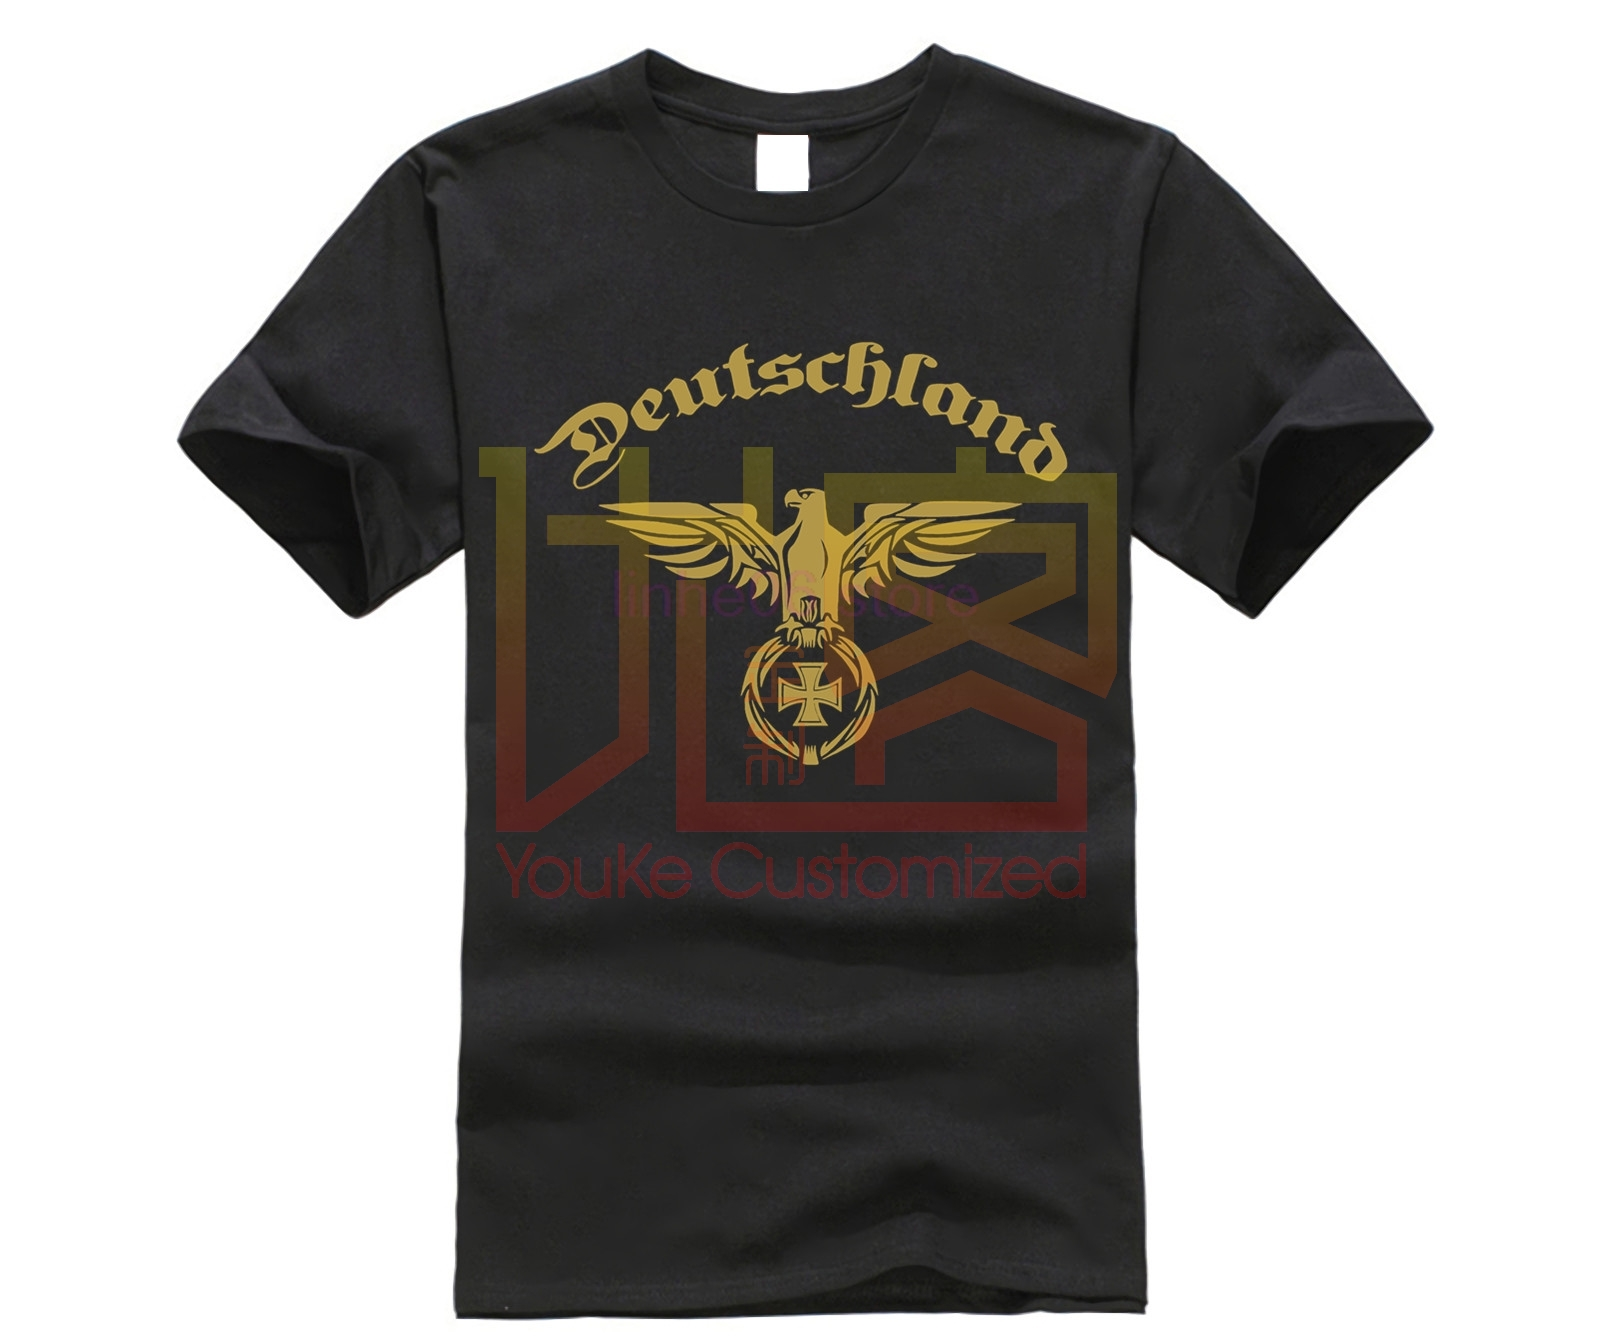 Deutschland Germany T-Shirt Golden Empire Eagle Cross T Shirt 2019 New 3D T Shirt Men Funny Tee Shirts Short Sleeve Funny Tees